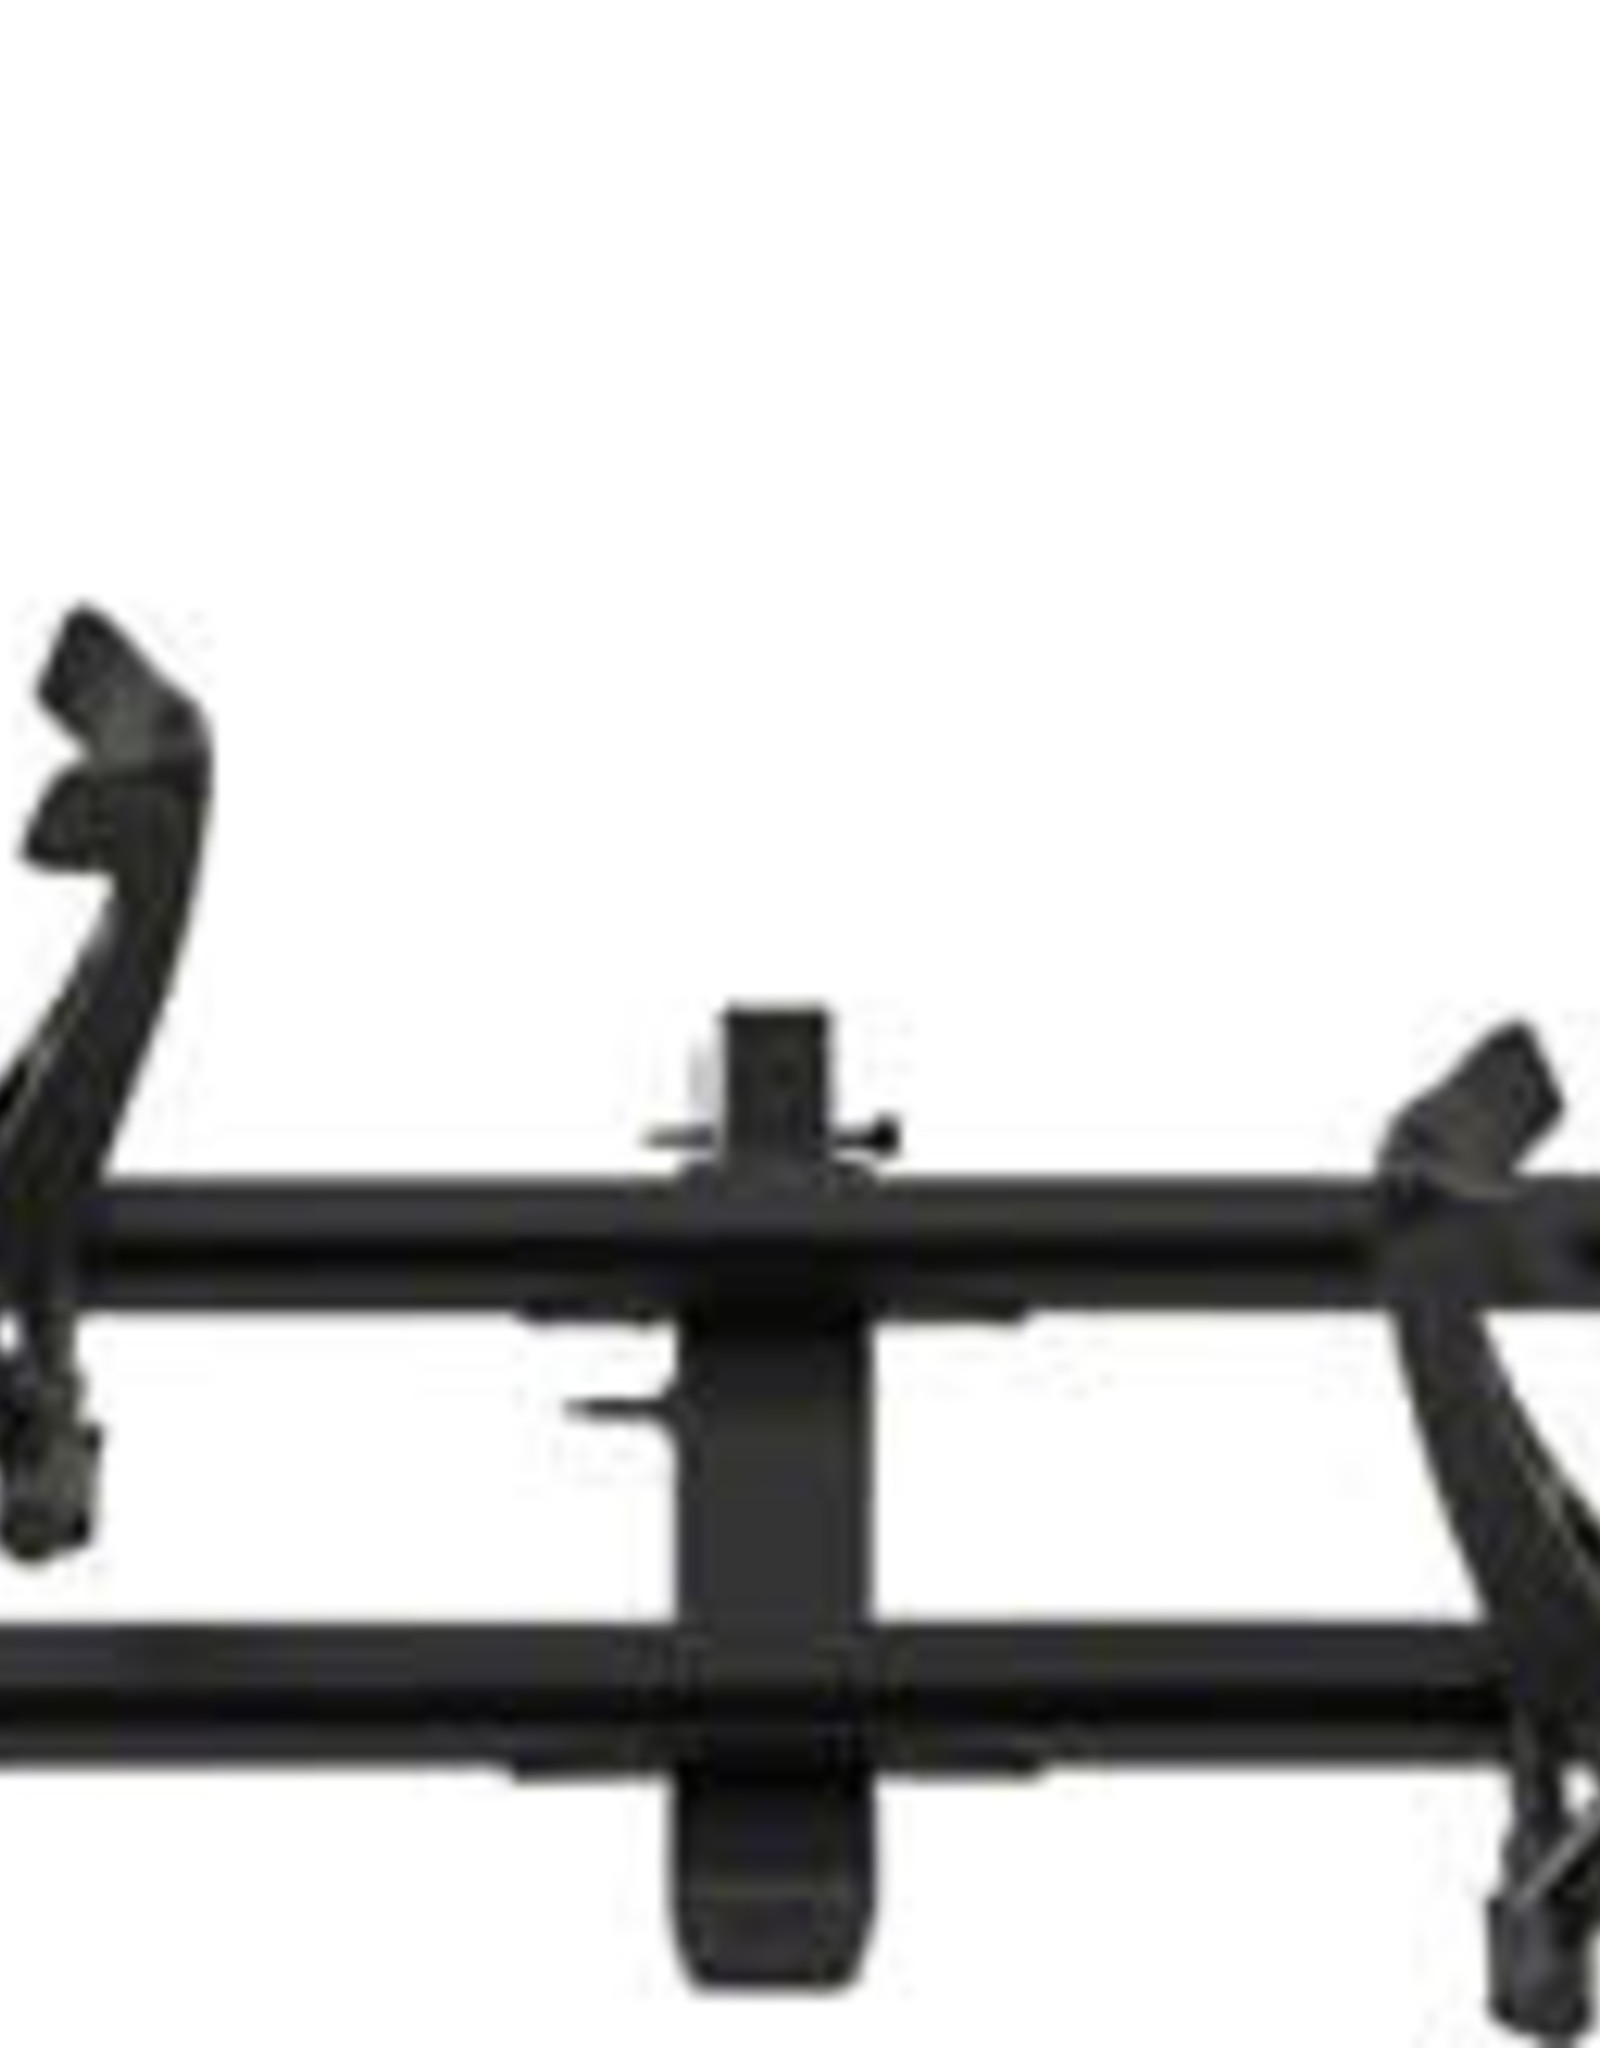 "RockyMounts RockyMounts MonoRail 2-Bike 1.25"" Hitch Rack, Black 2"